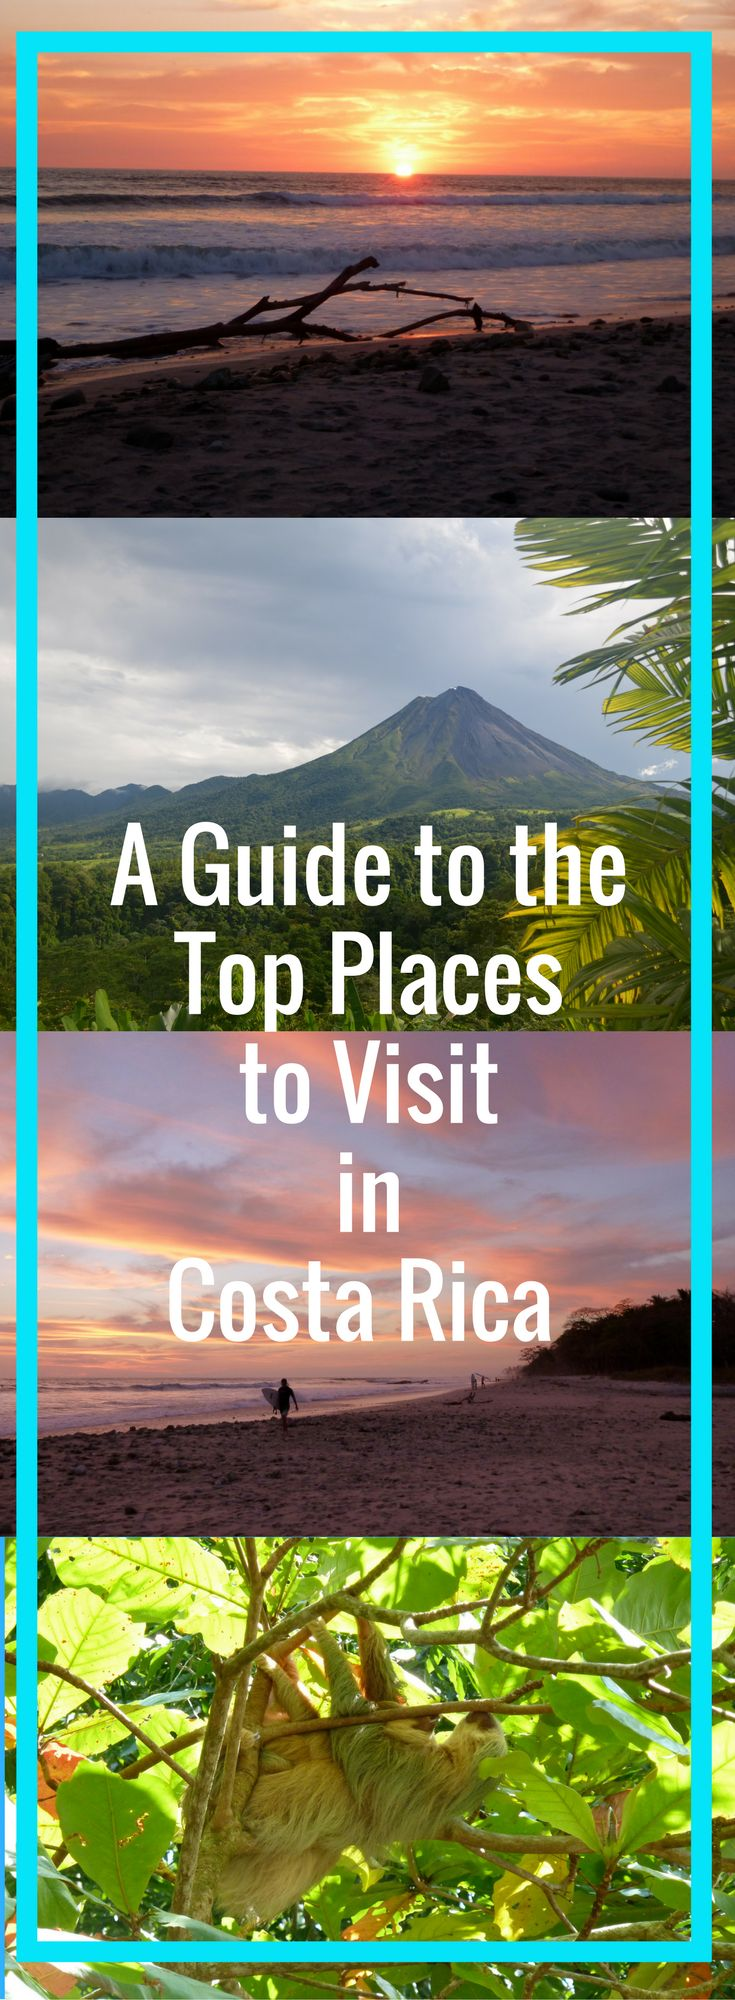 What to do and see in the top destinations in Costa Rica including La Fortuna, Manuel Antonio, Quepos, Santa Teresa, Montezuma and more! Follow Your Detour!